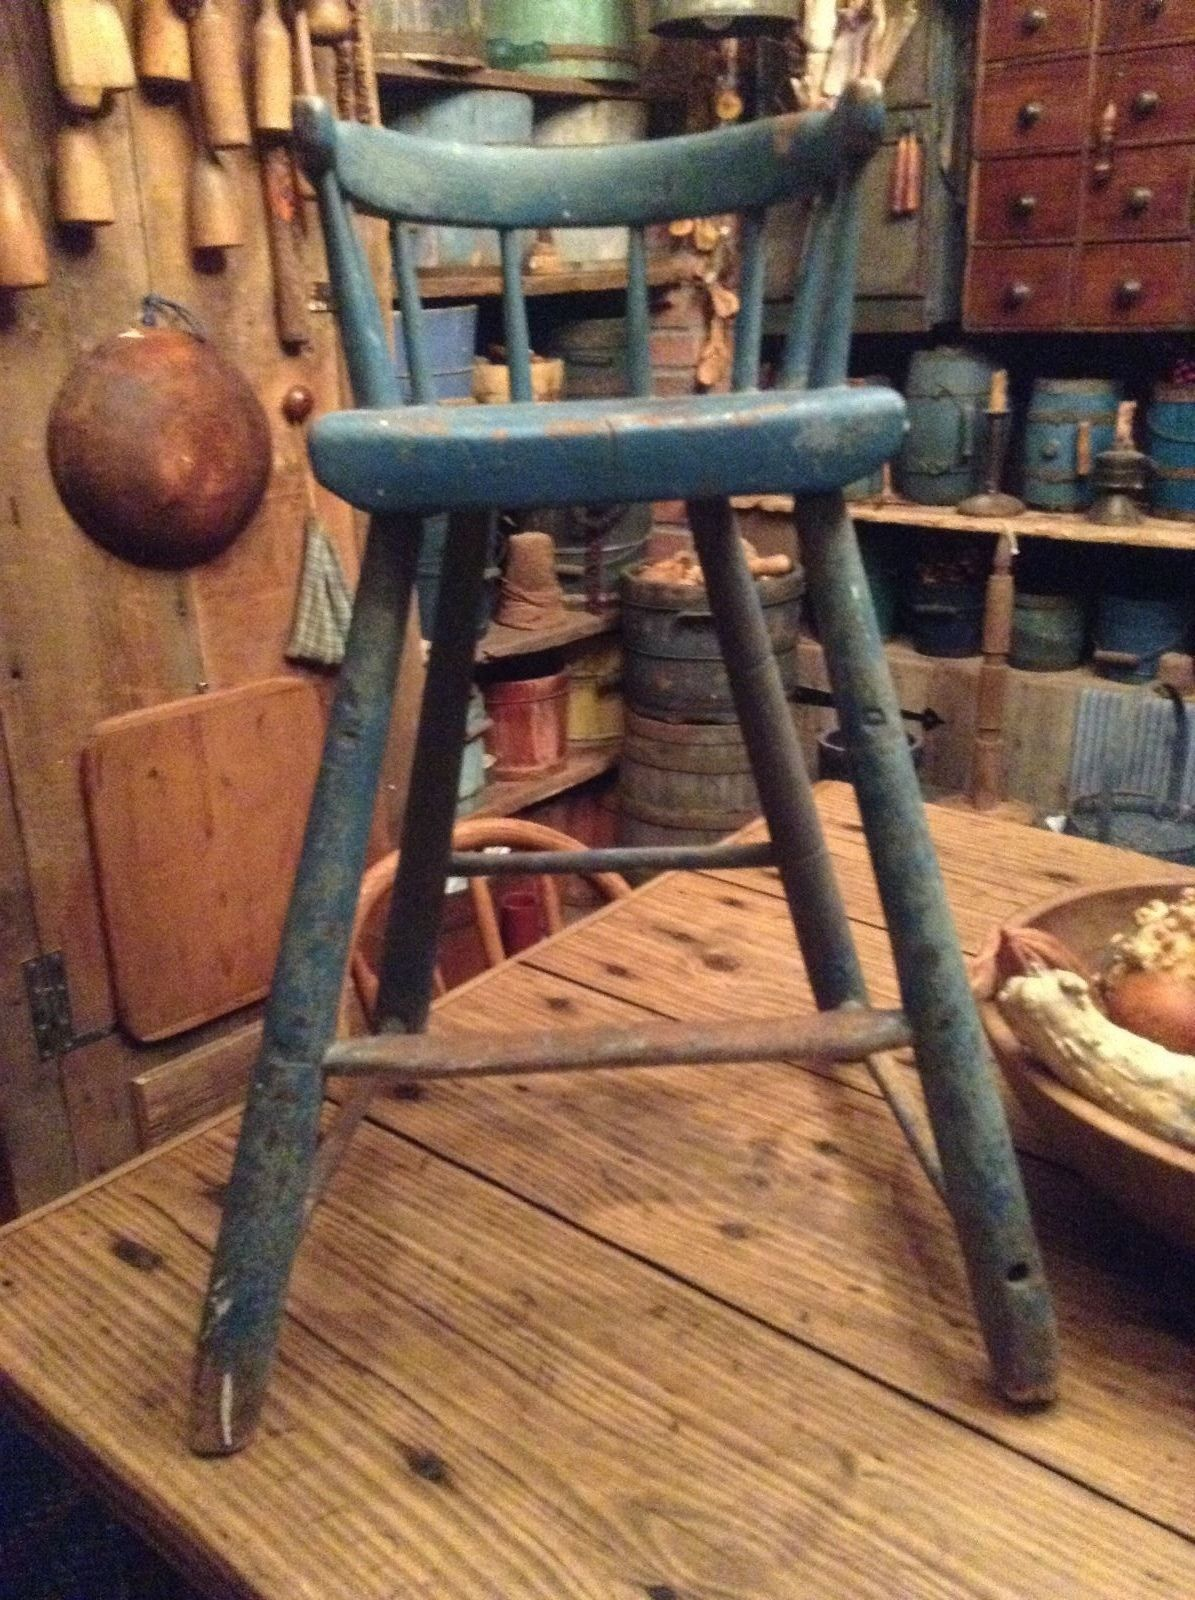 Antique Childs Highchair Youth Chair Blue Paint Primitive AAFA Early Old |  eBay - Antique Childs Highchair Youth Chair Blue Paint Primitive AAFA Early